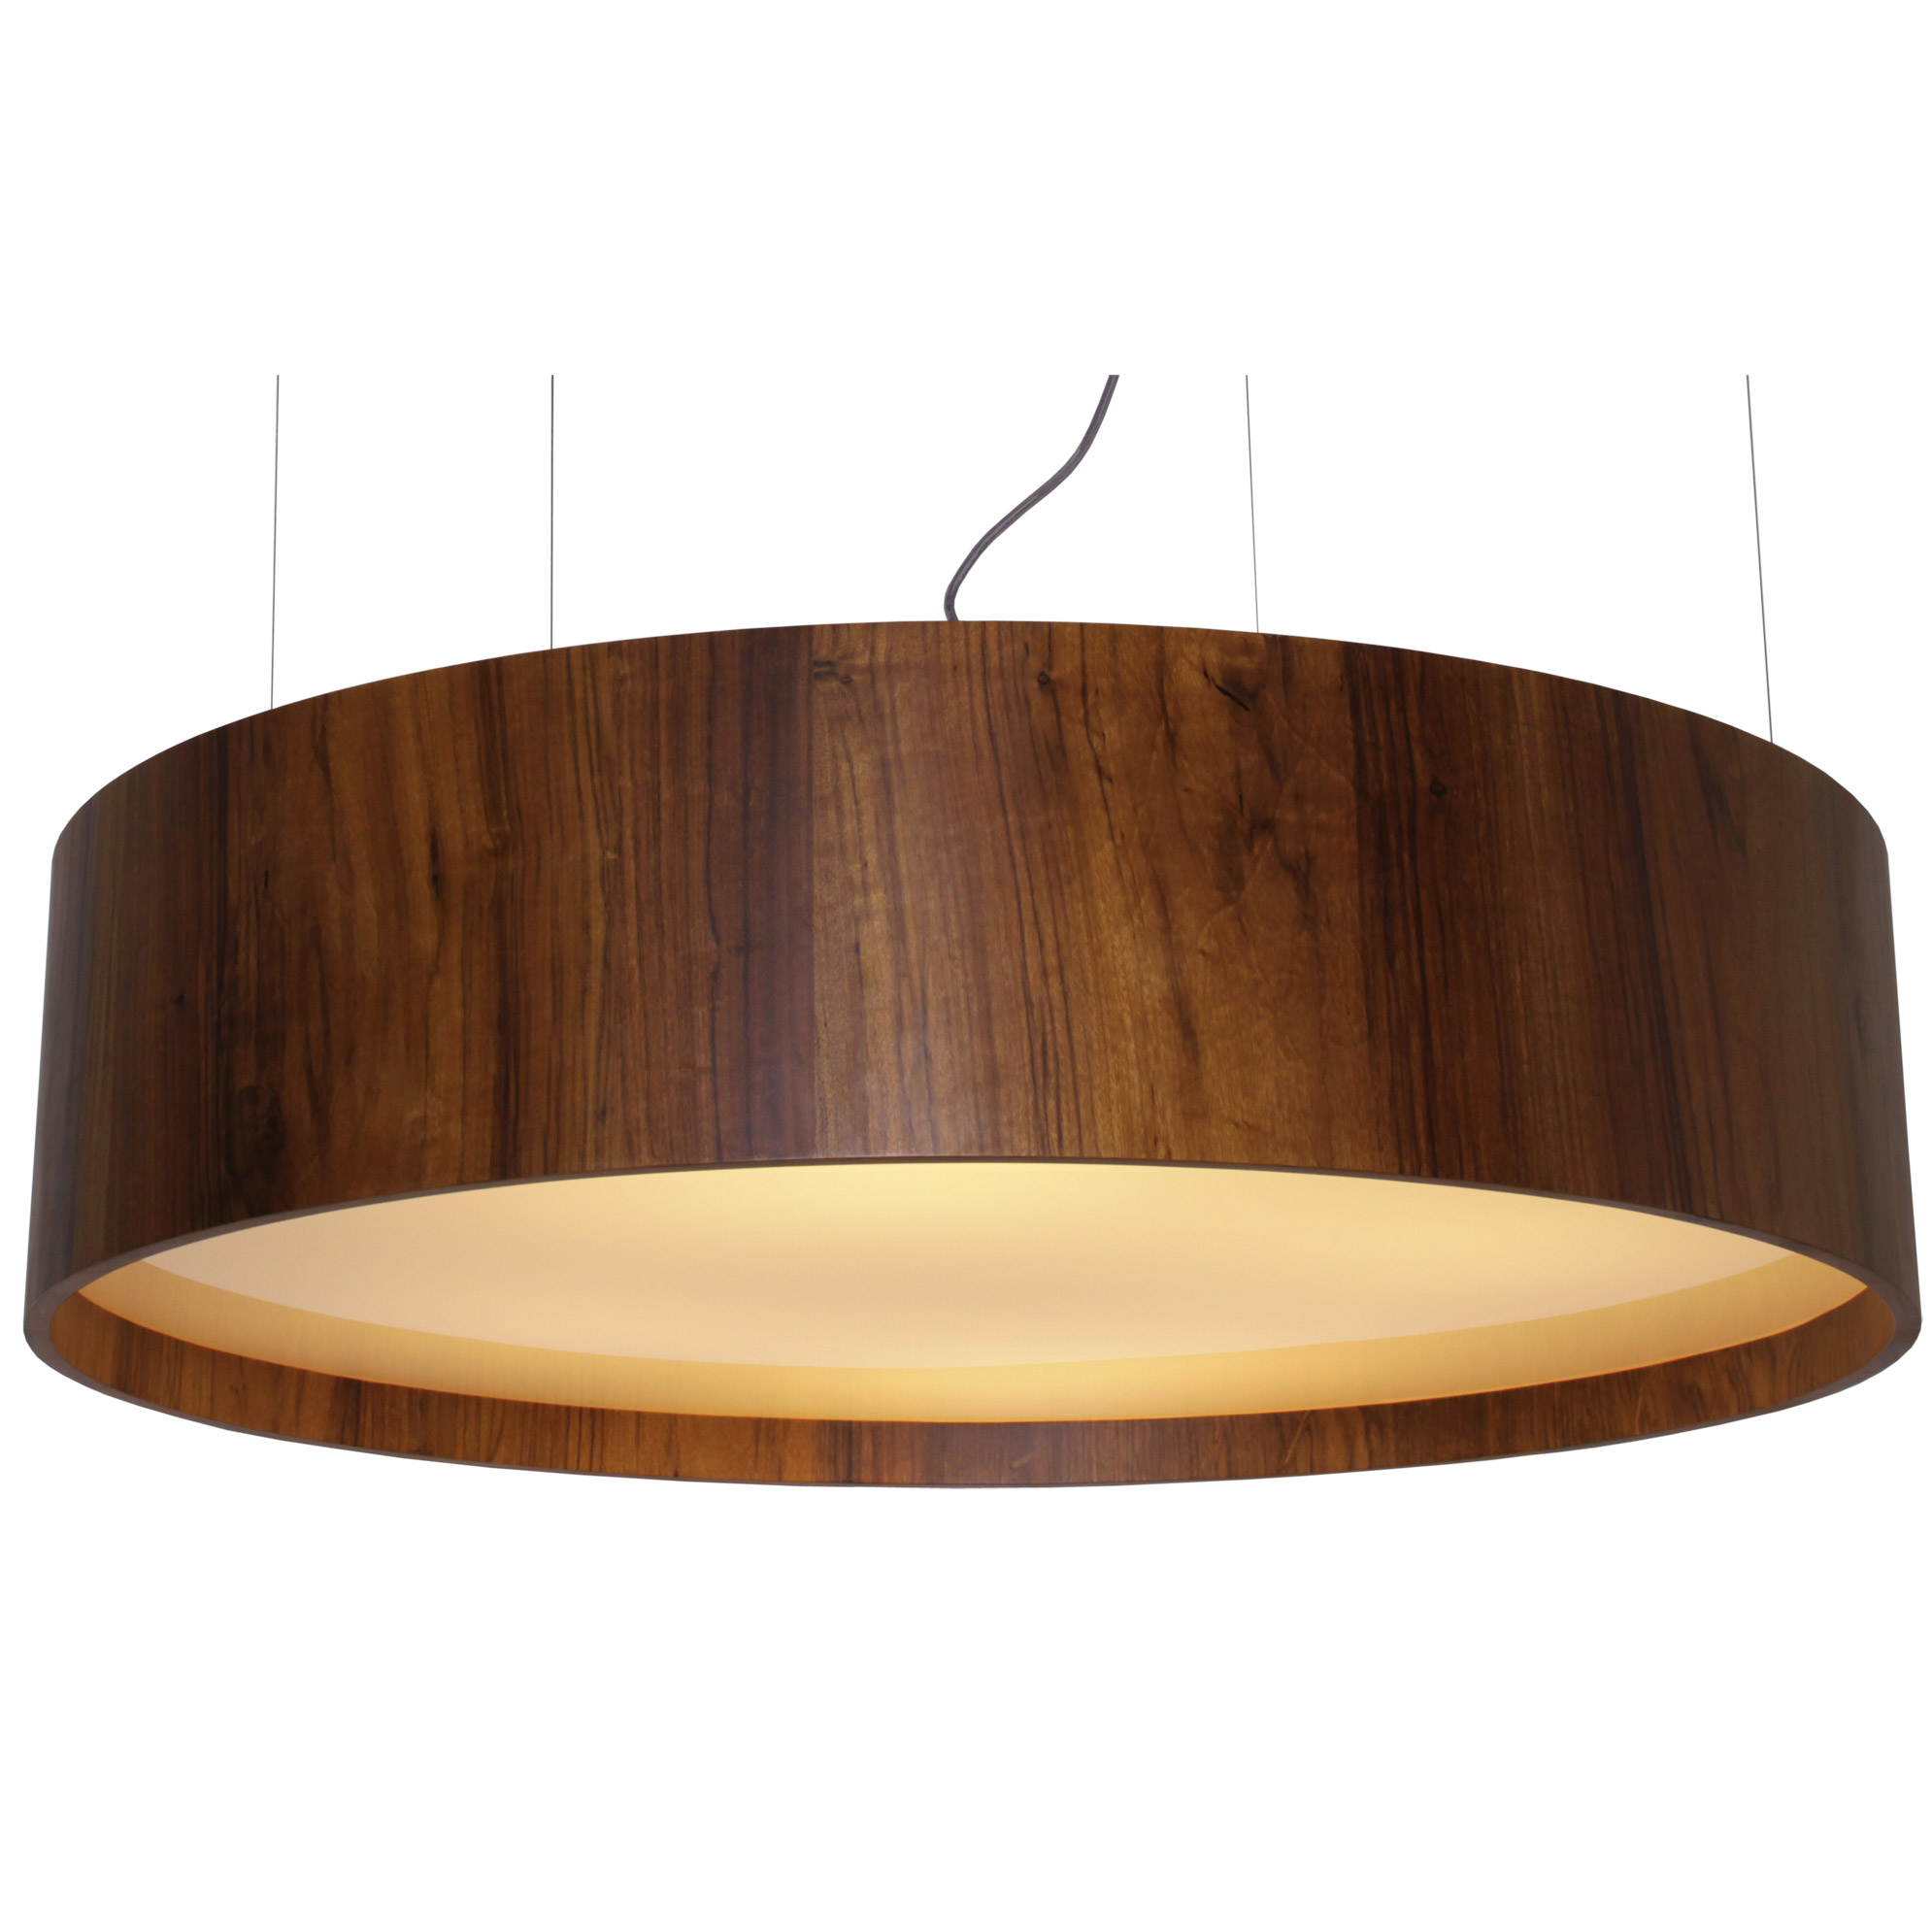 products fabric ceiling lamp linea drum allegro light with brushed ll di pendant nickel white shade unlit web fixture